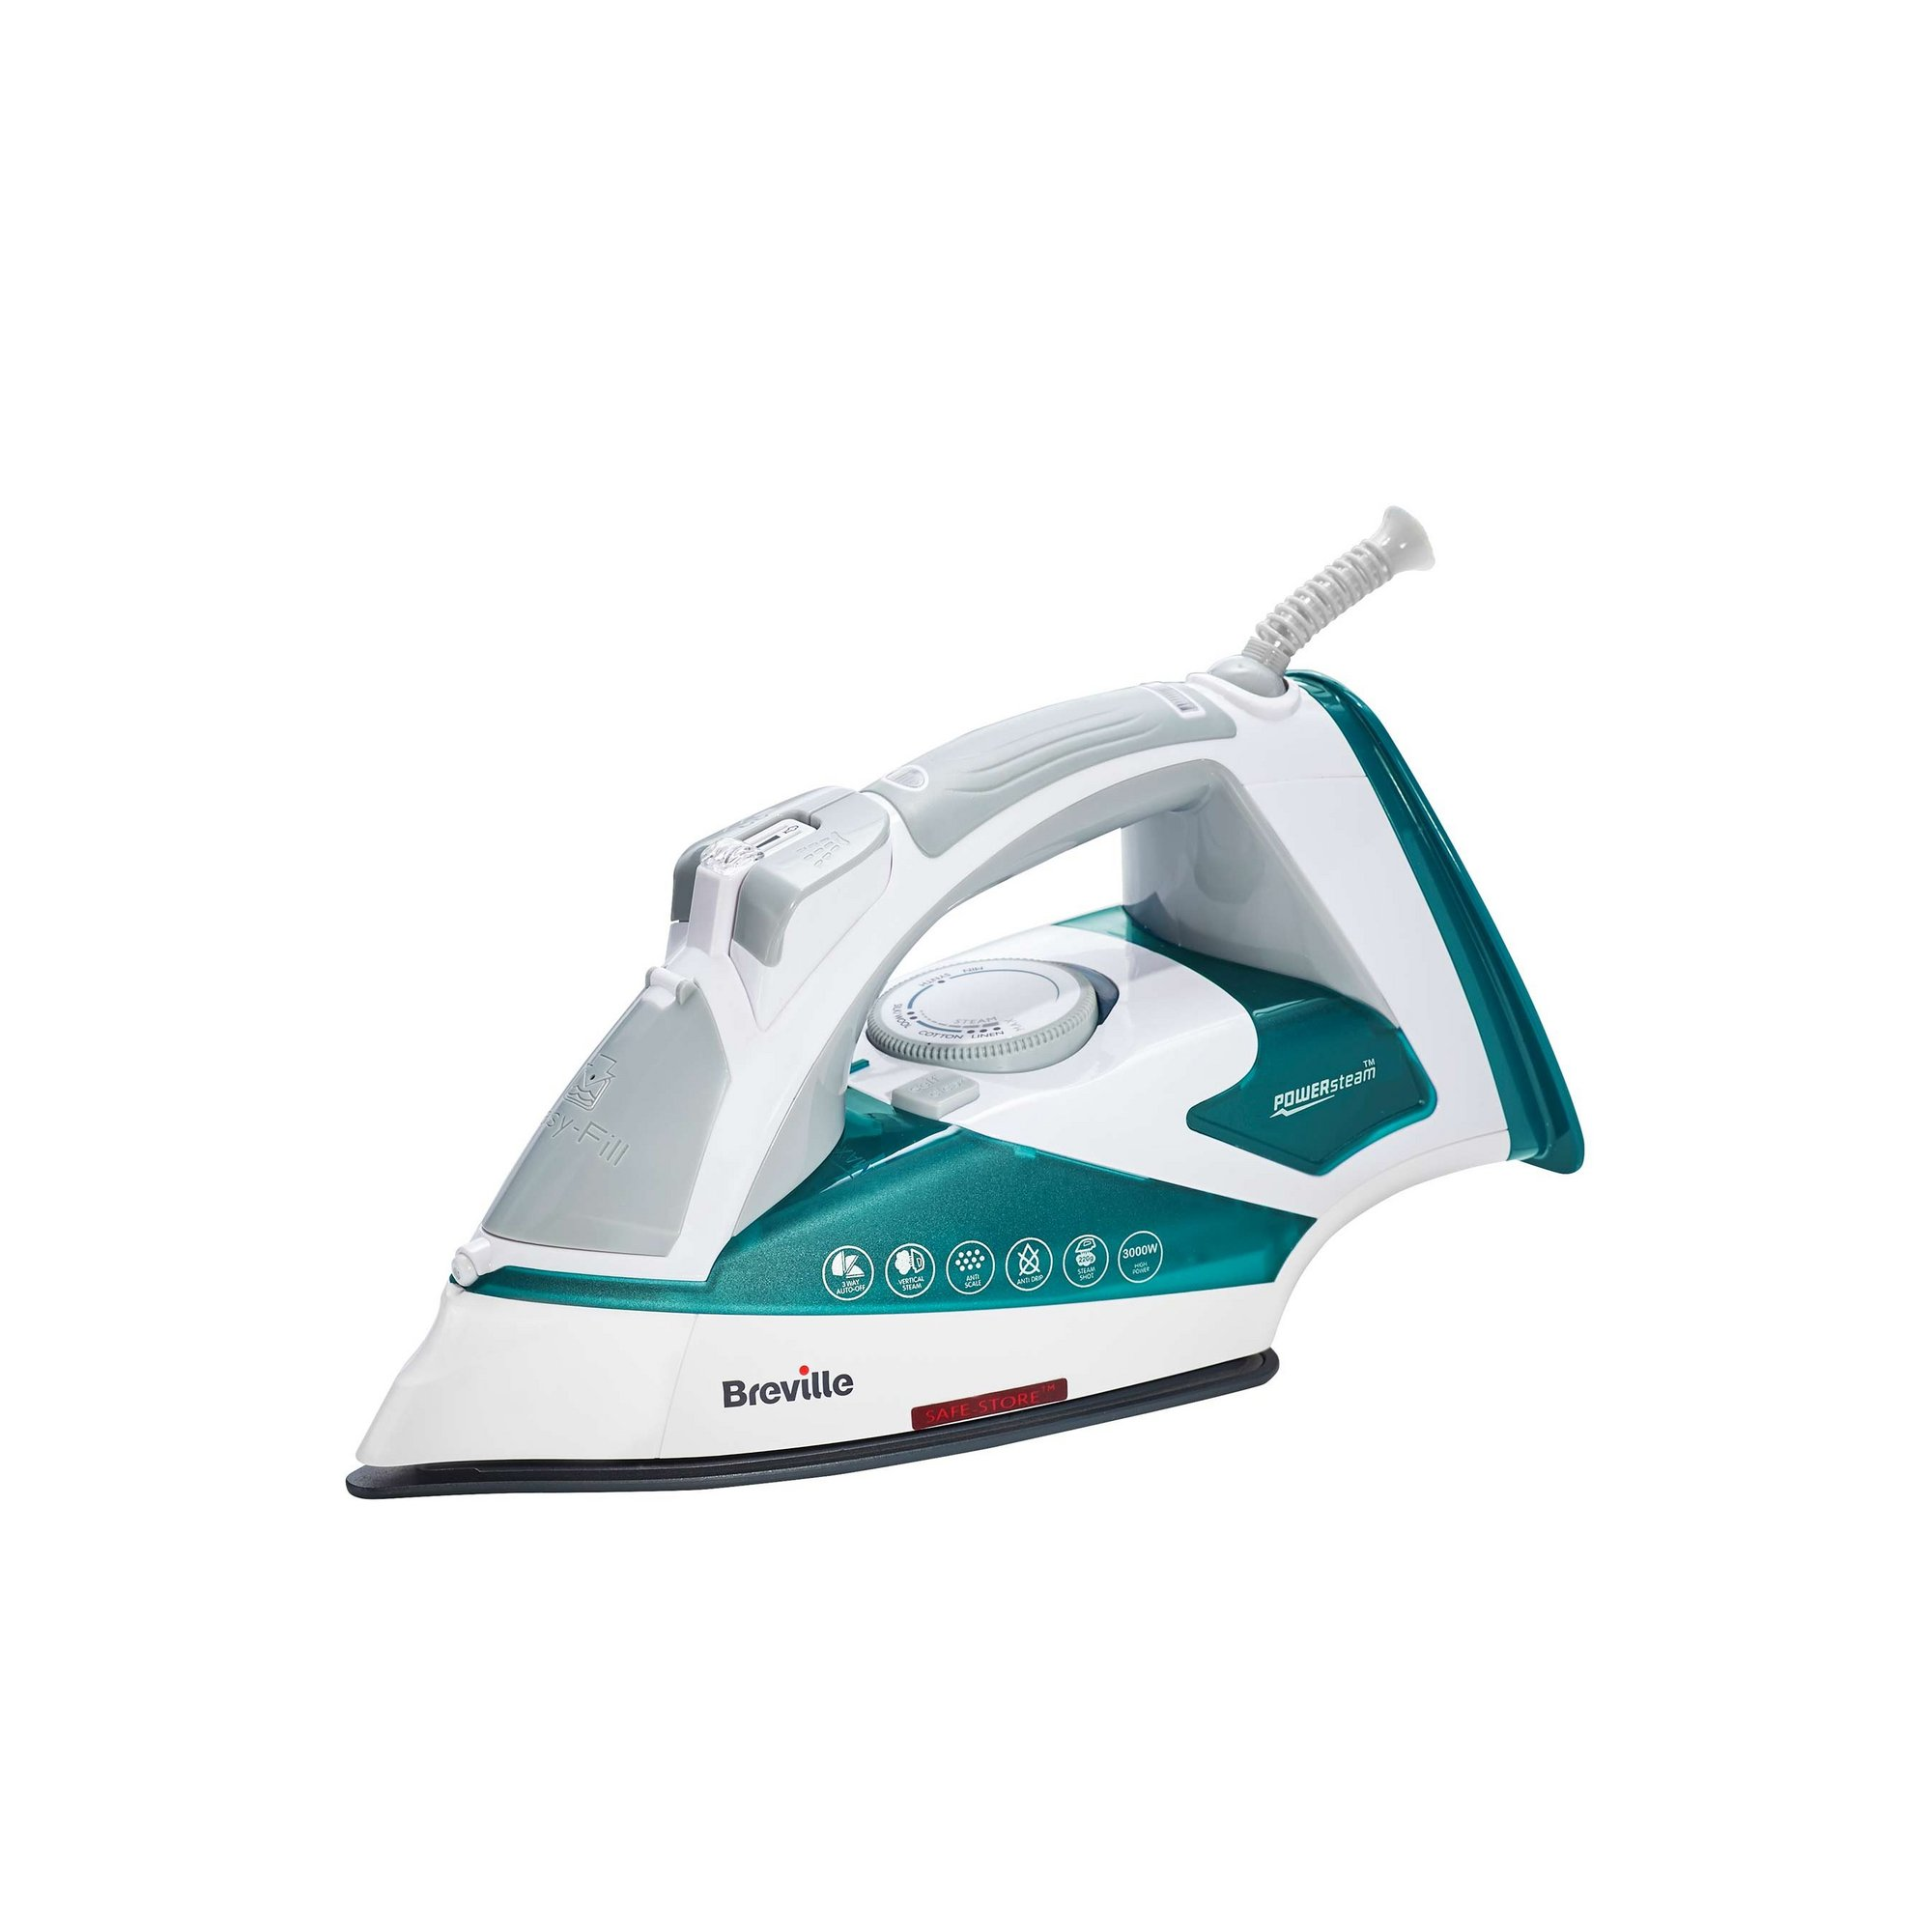 Image of Breville Power Steam Advanced 3000W Iron